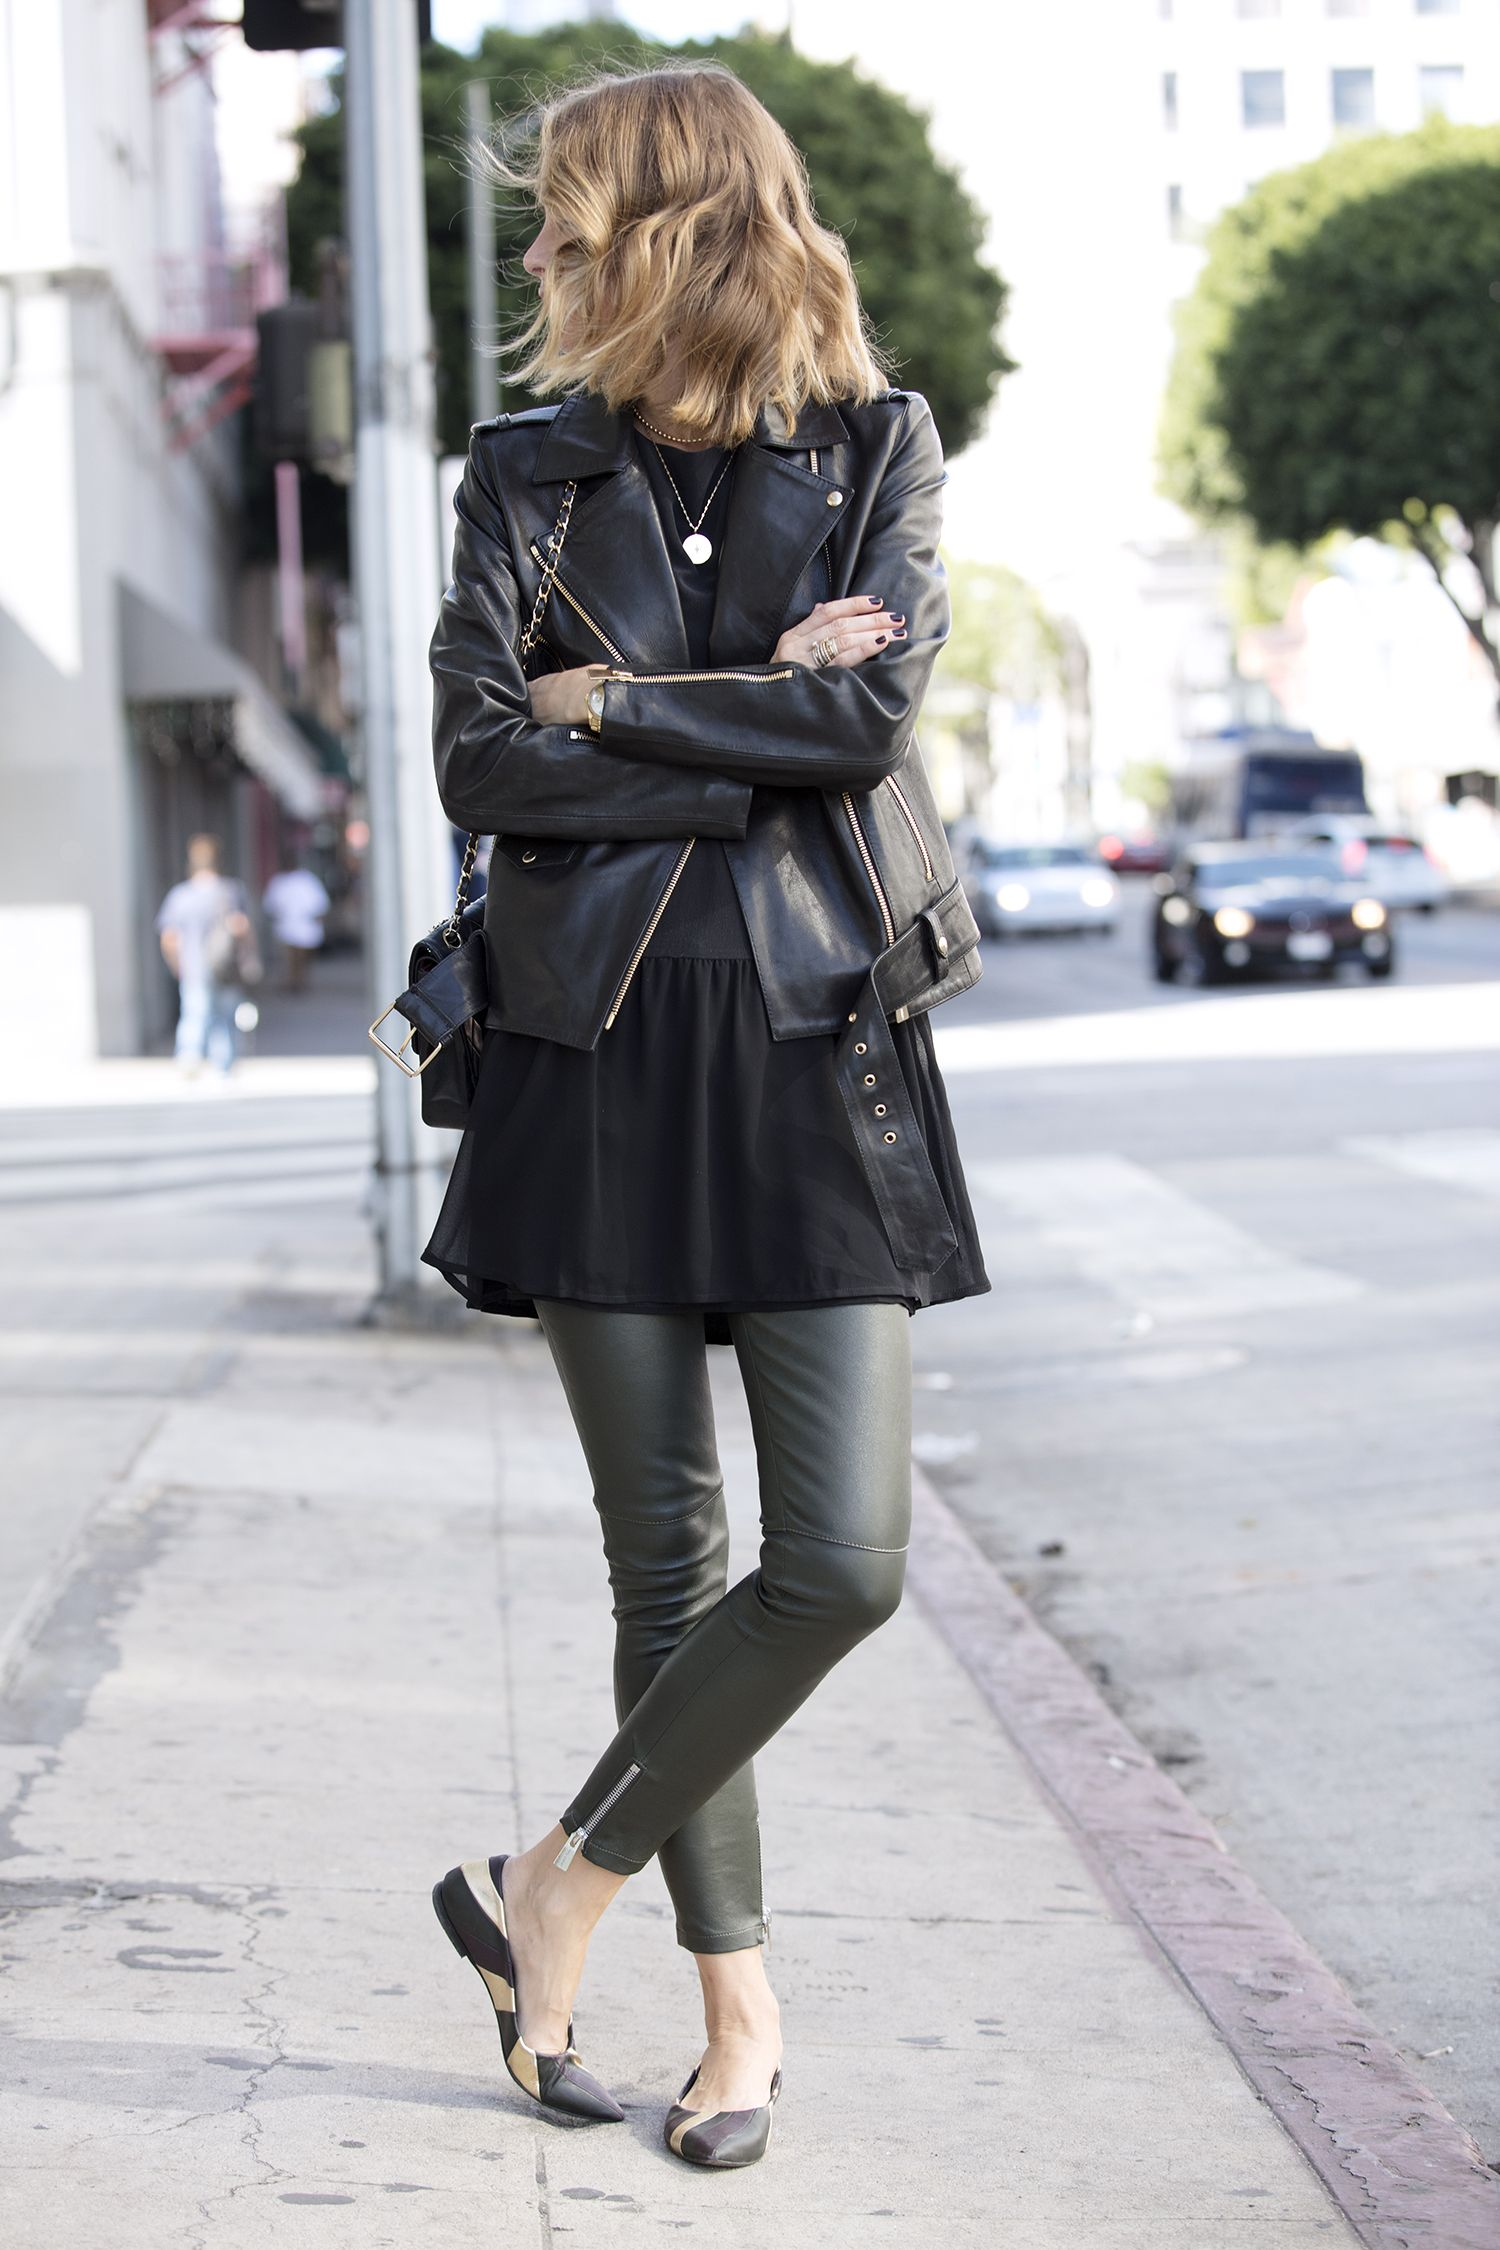 BREAK THE RULES IN LAYERS Leather jacket dress, Fashion